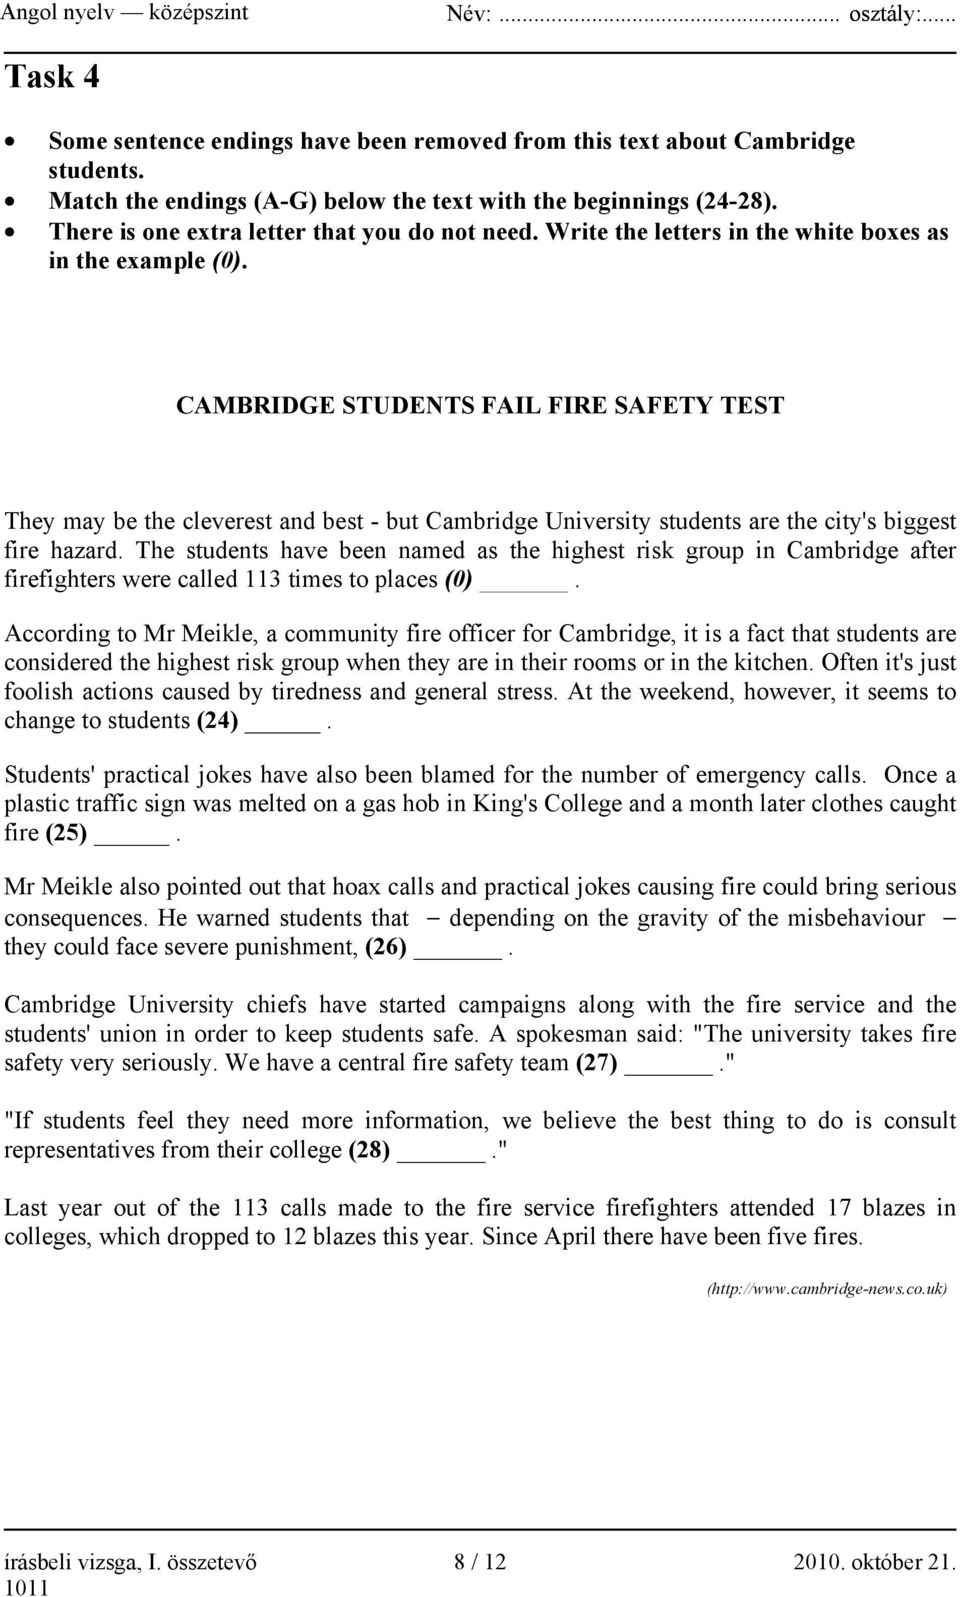 CAMBRIDGE STUDENTS FAIL FIRE SAFETY TEST They may be the cleverest and best - but Cambridge University students are the city's biggest fire hazard.